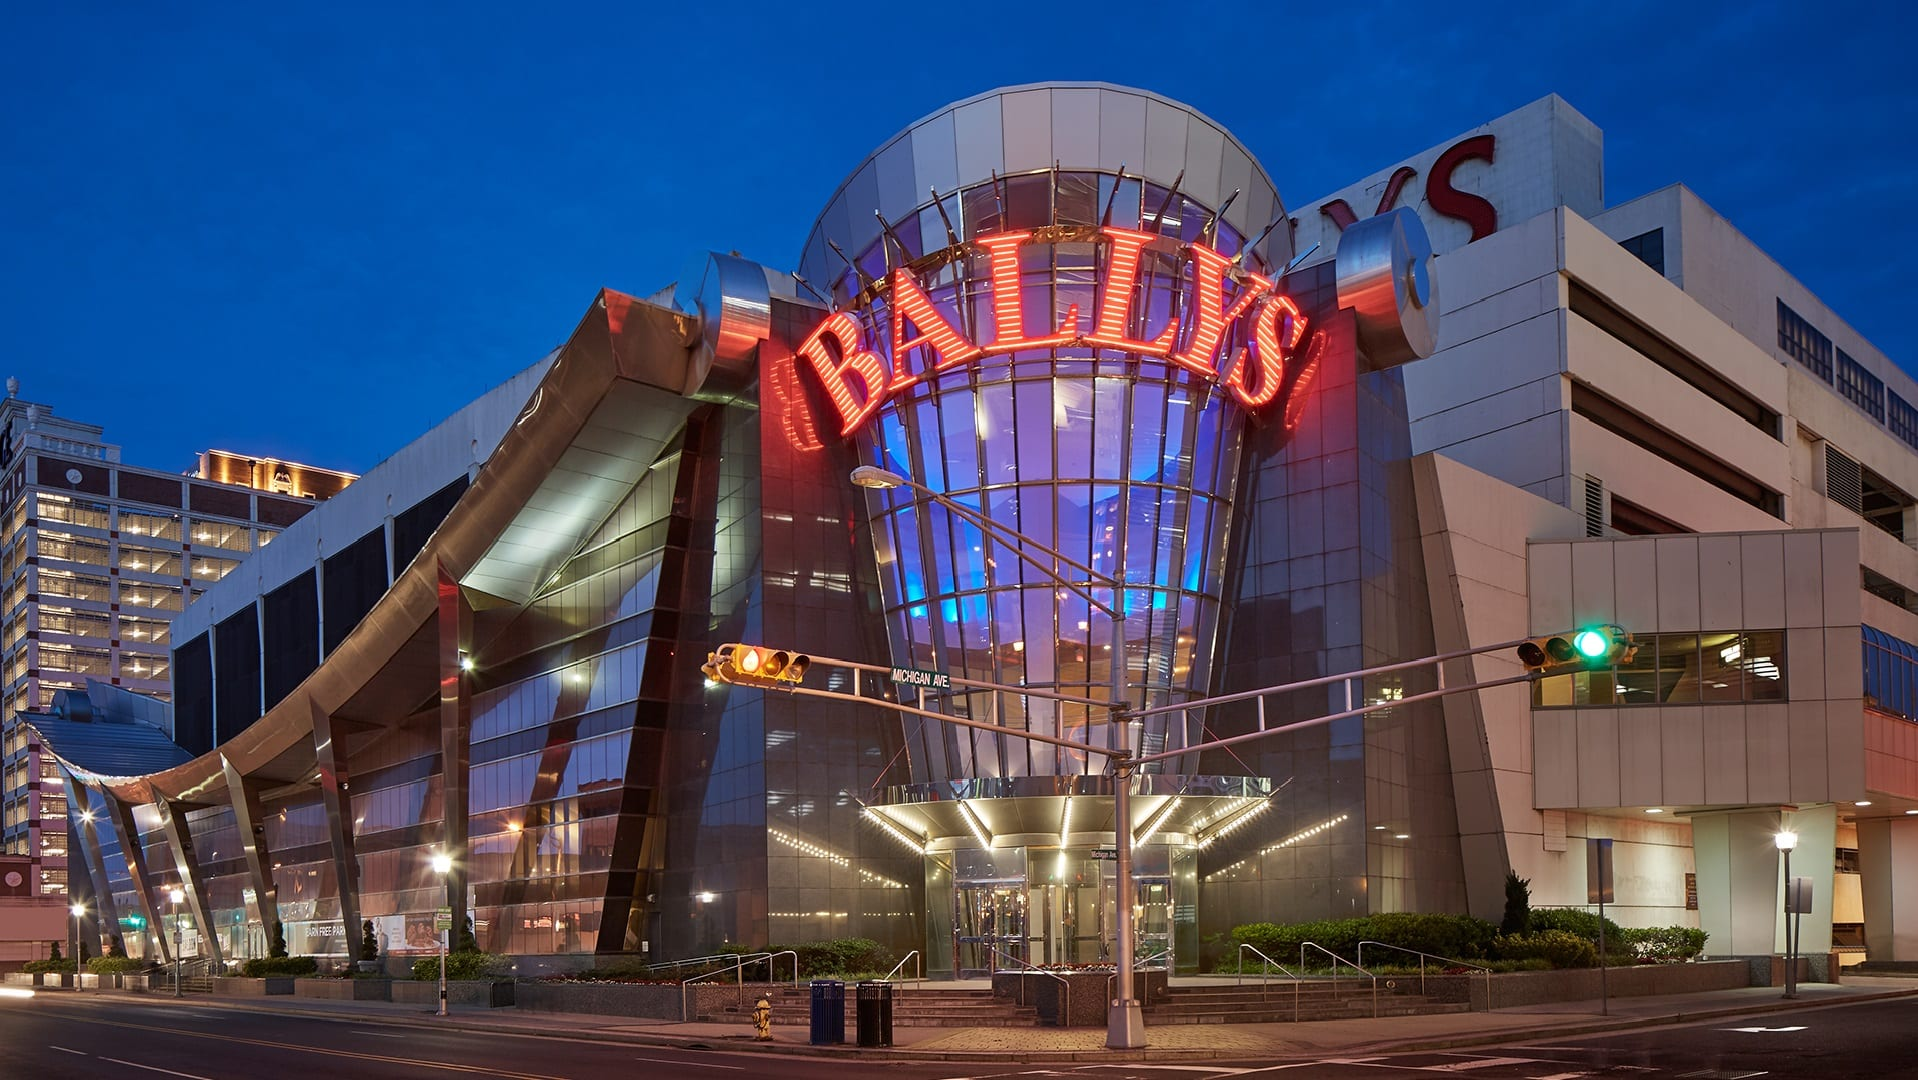 NJ Casino Trips - Bally's Casino - LI Casino Transportation